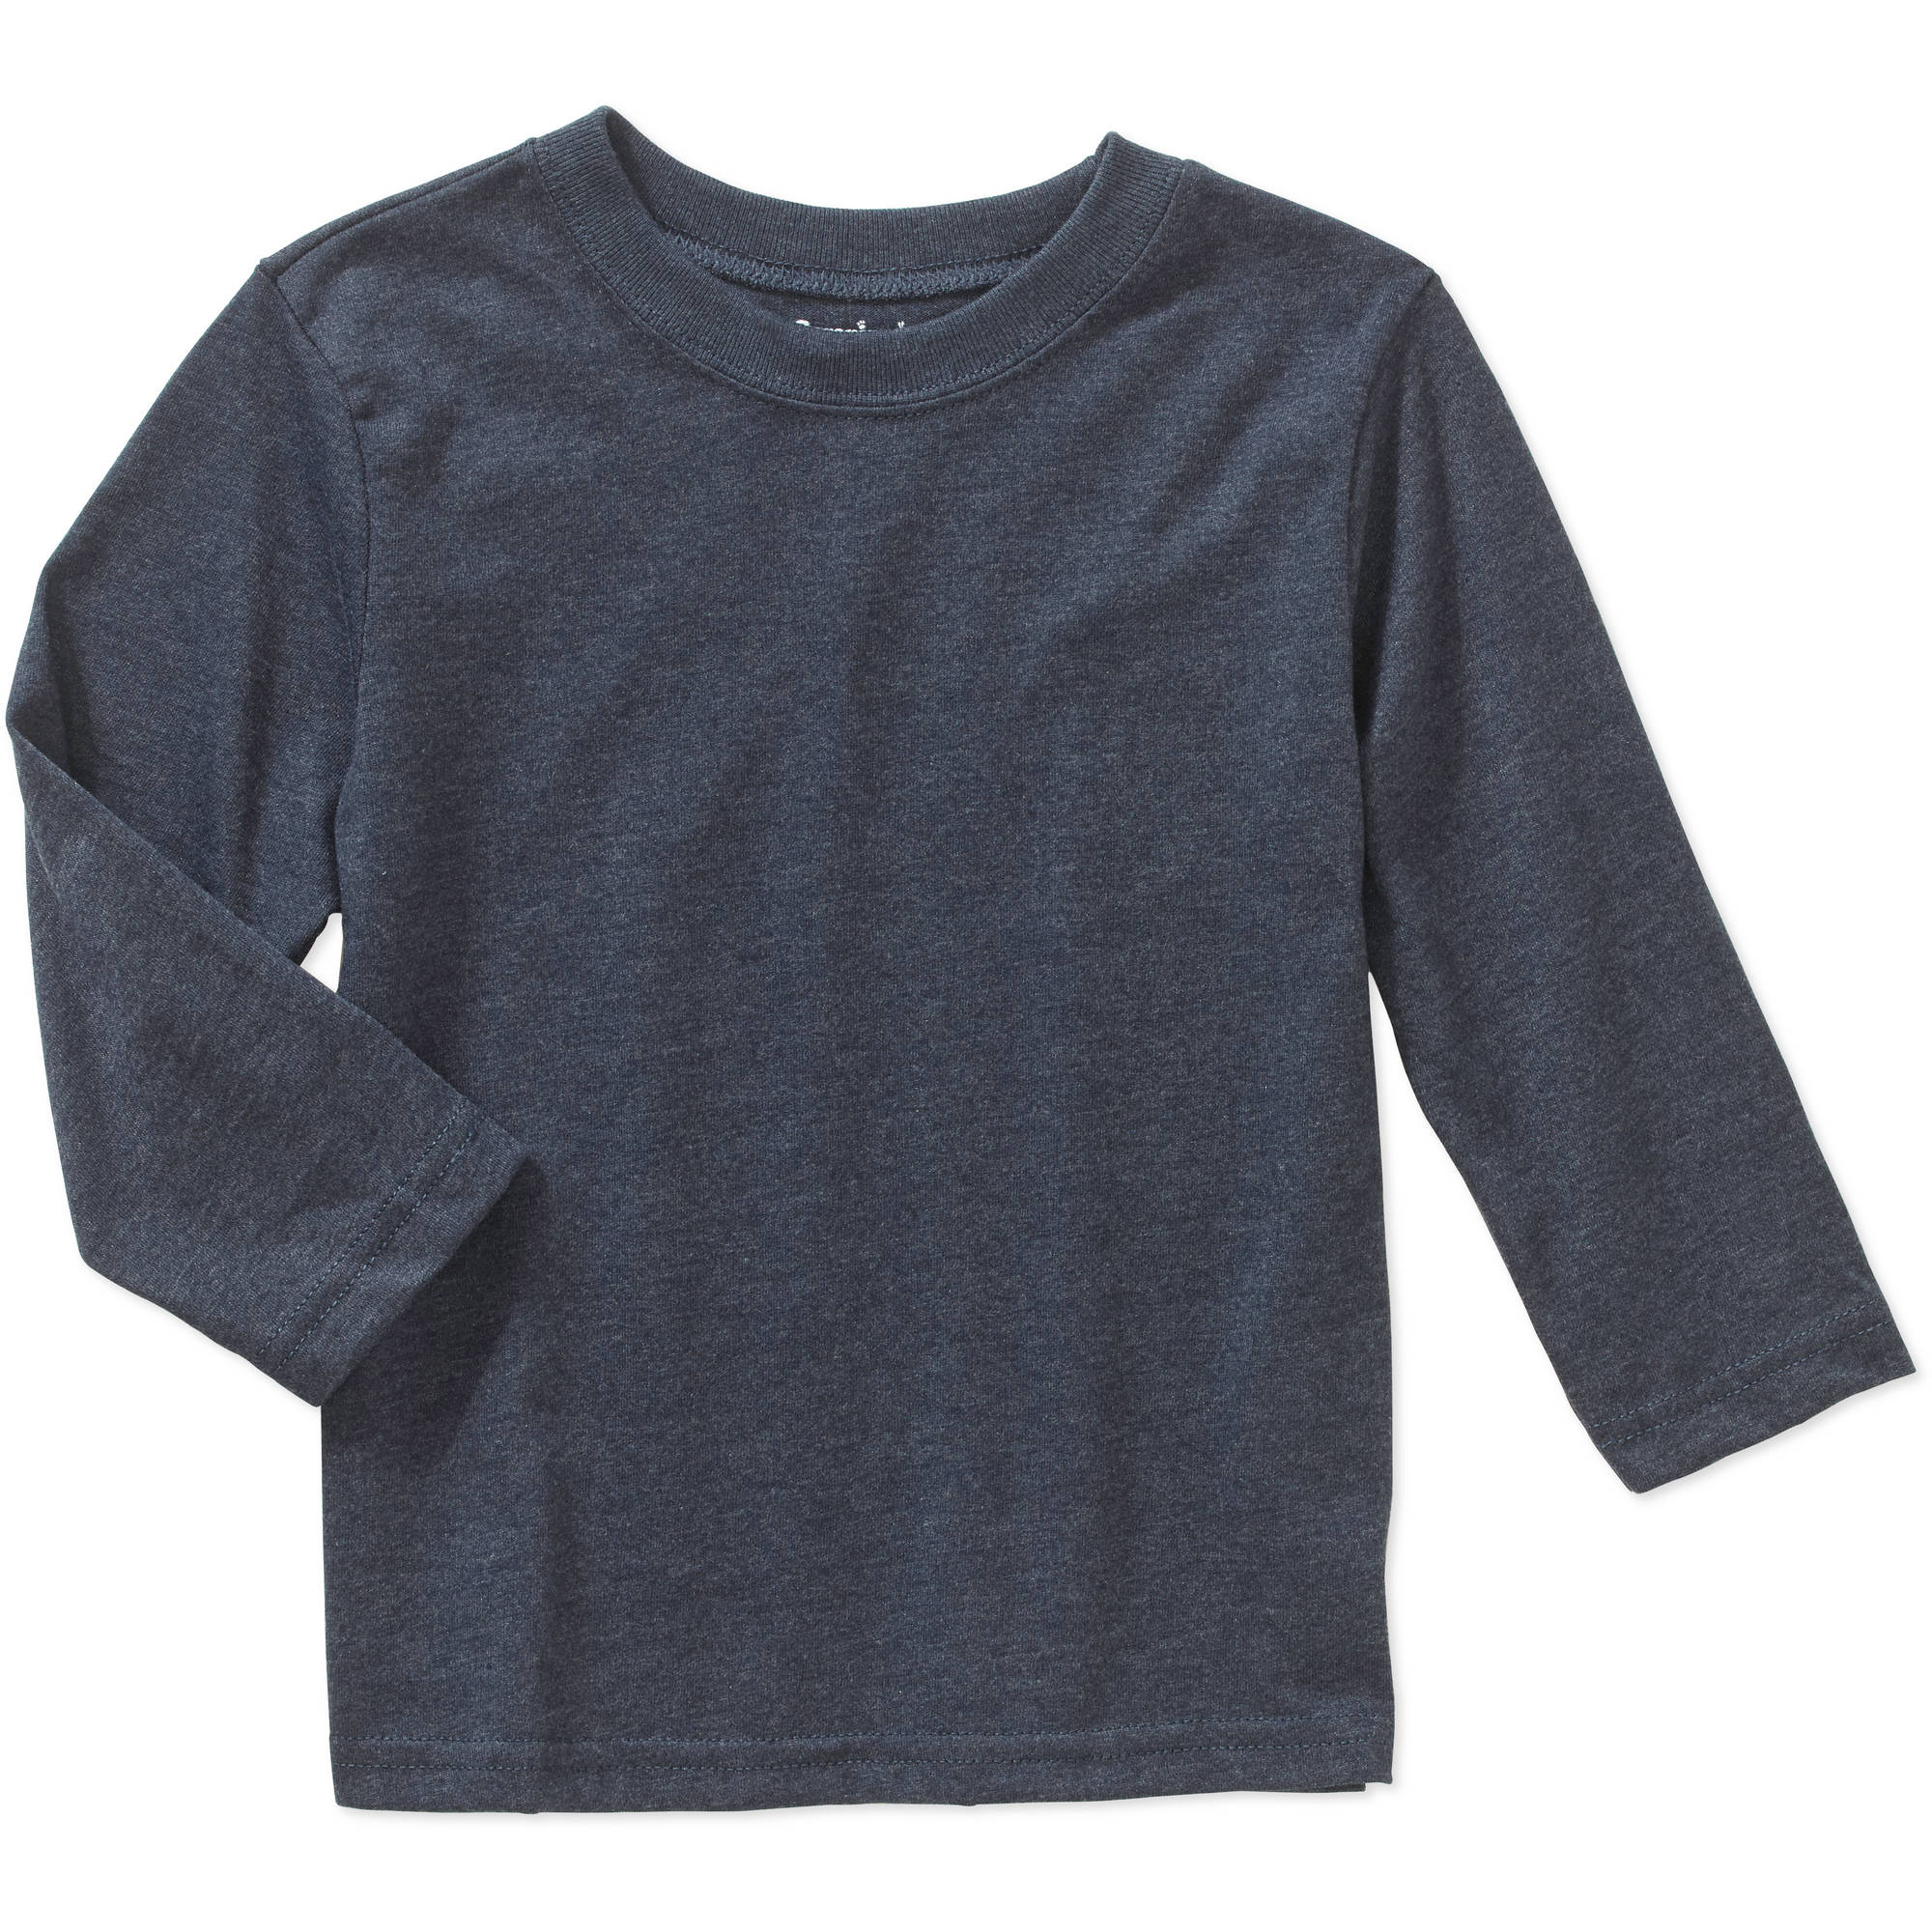 Garanimals Baby Toddler Boys' Long Sleeve Solid Heather Tee Shirt